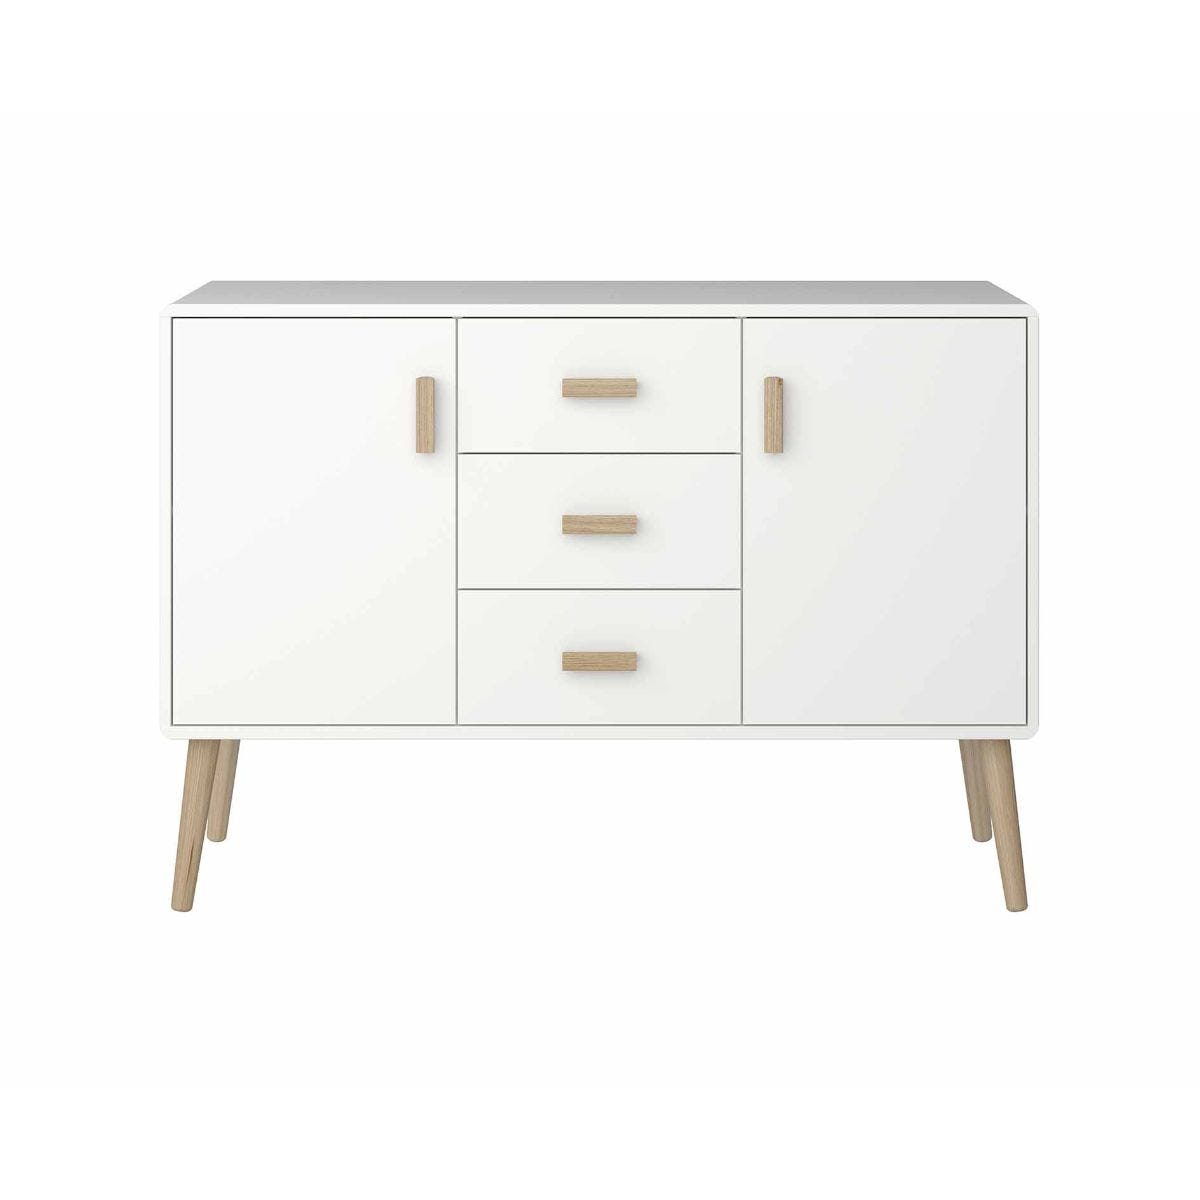 Steens Pavona Sideboard, White